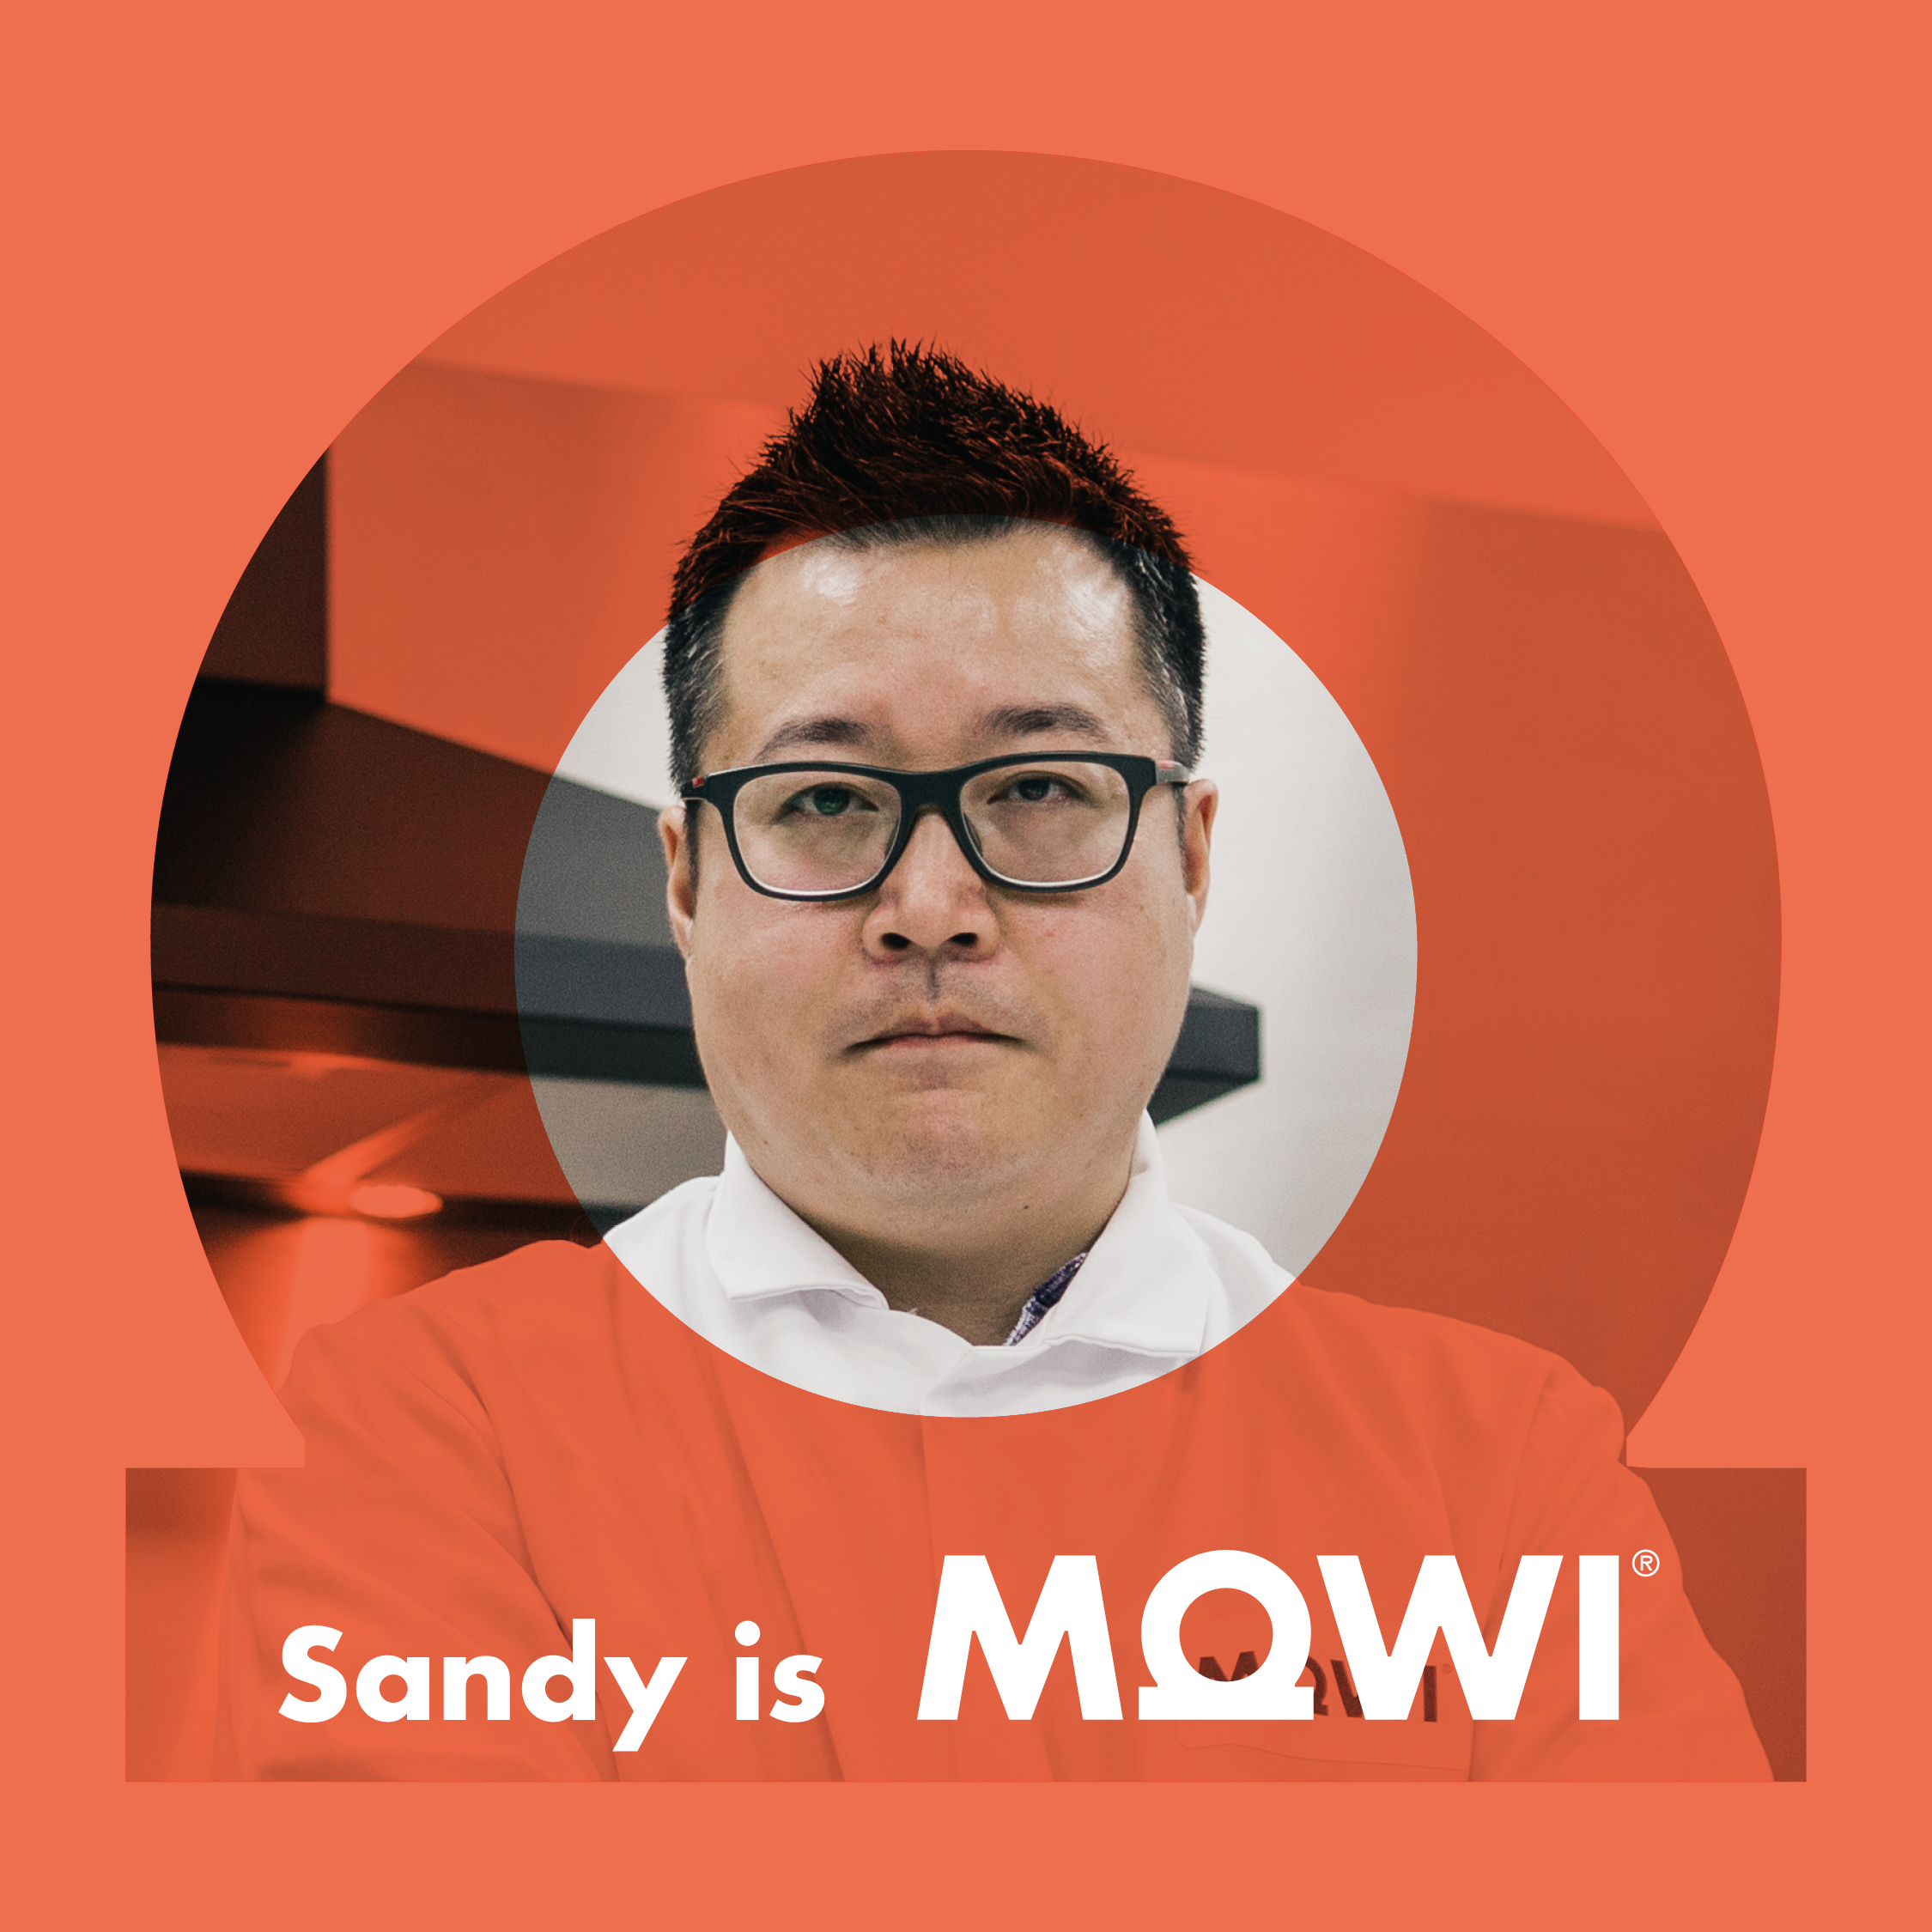 A social media asset for Mowi, showing one of their team members, Sandy